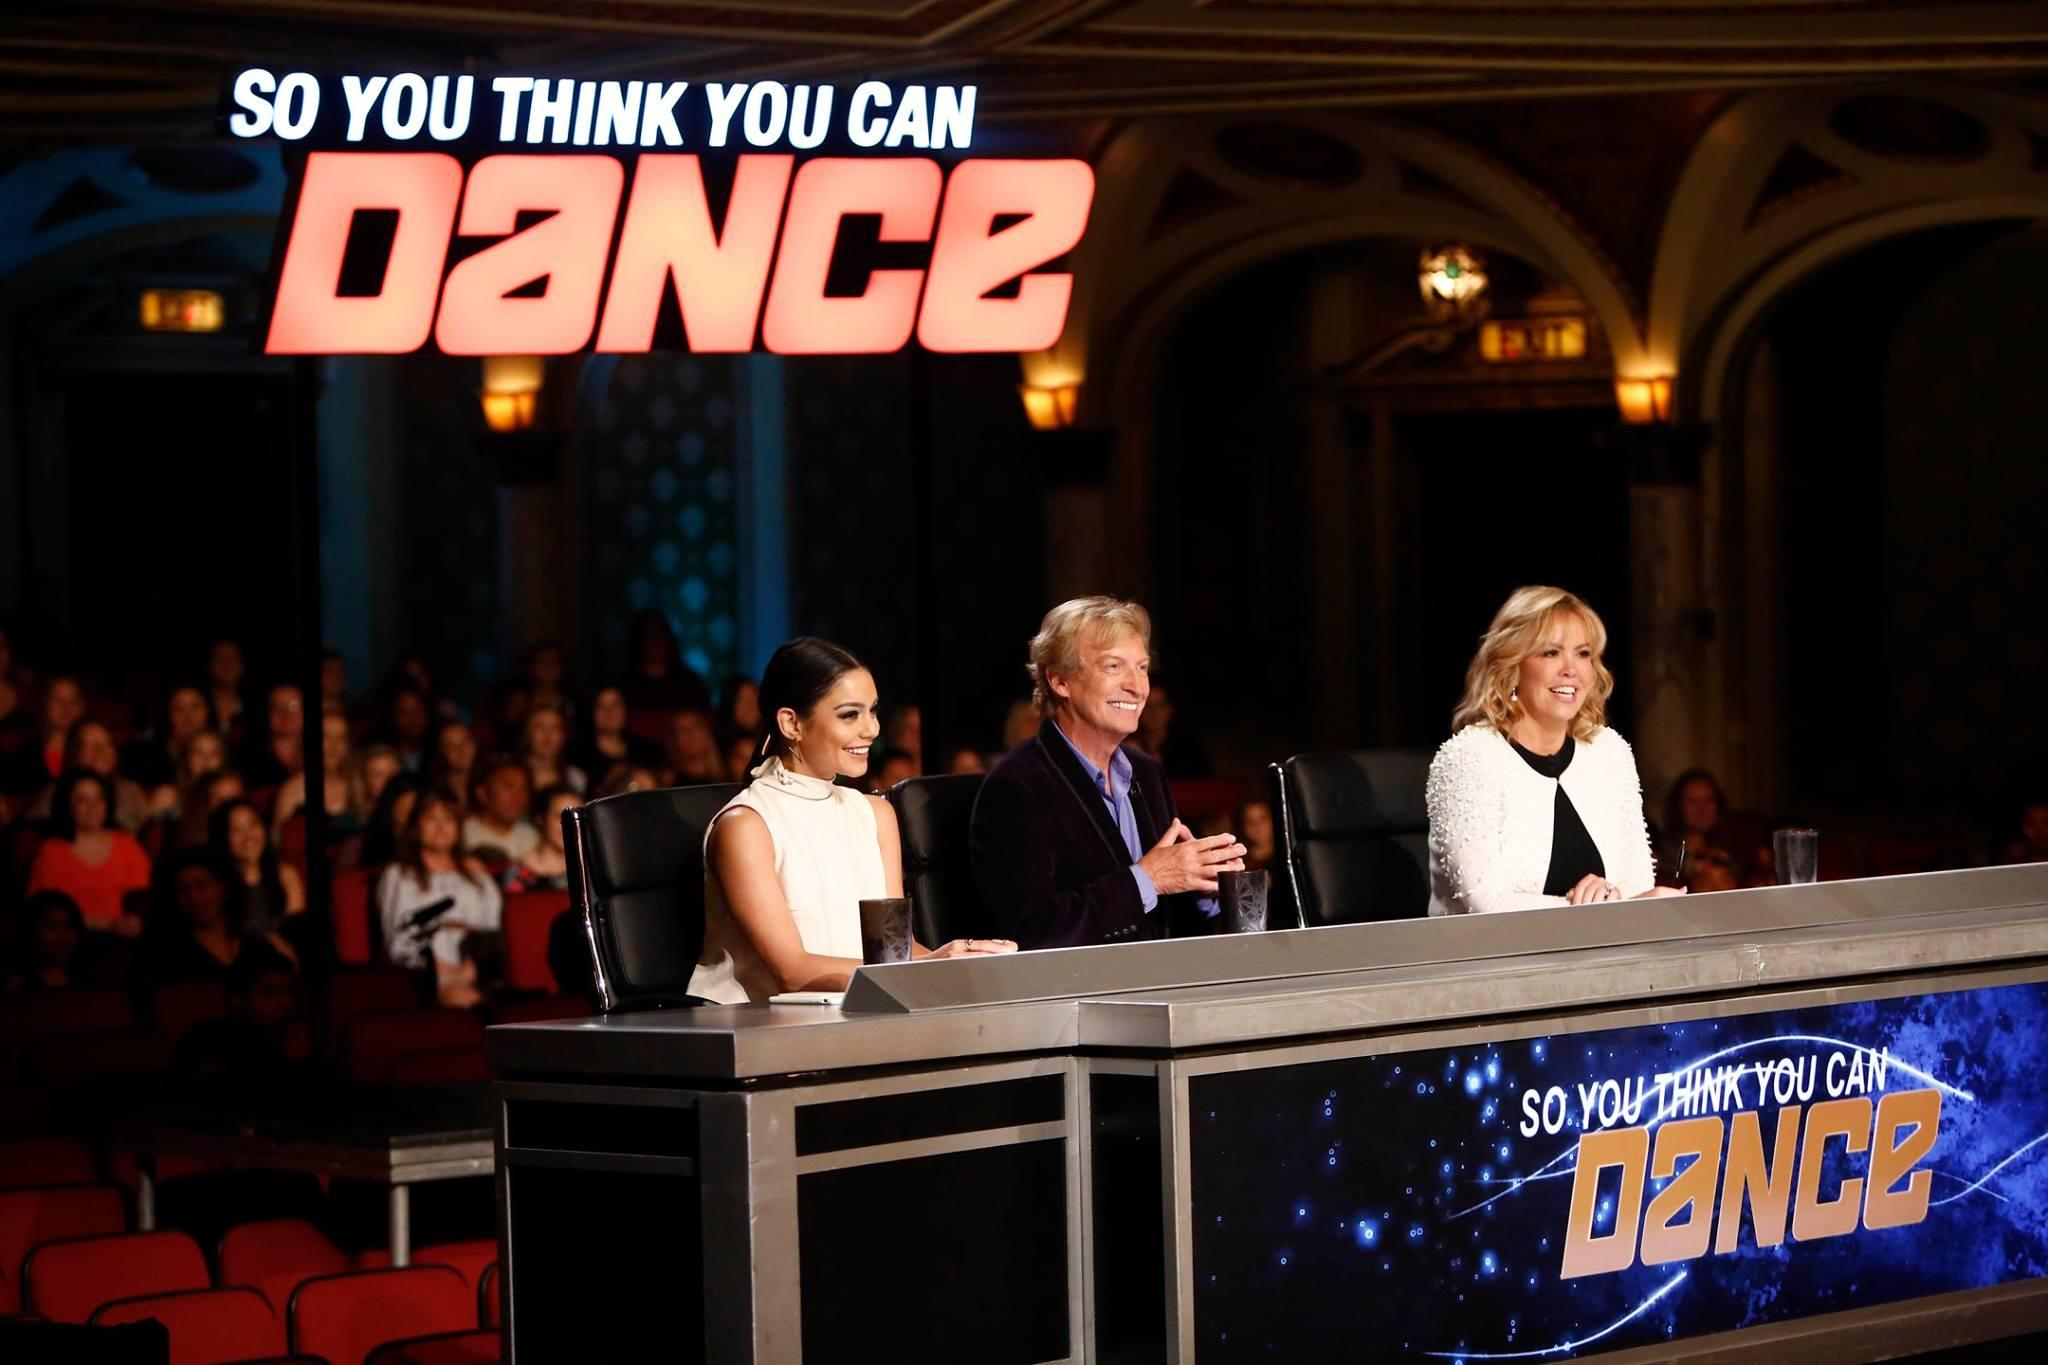 'So You Think You Can Dance'